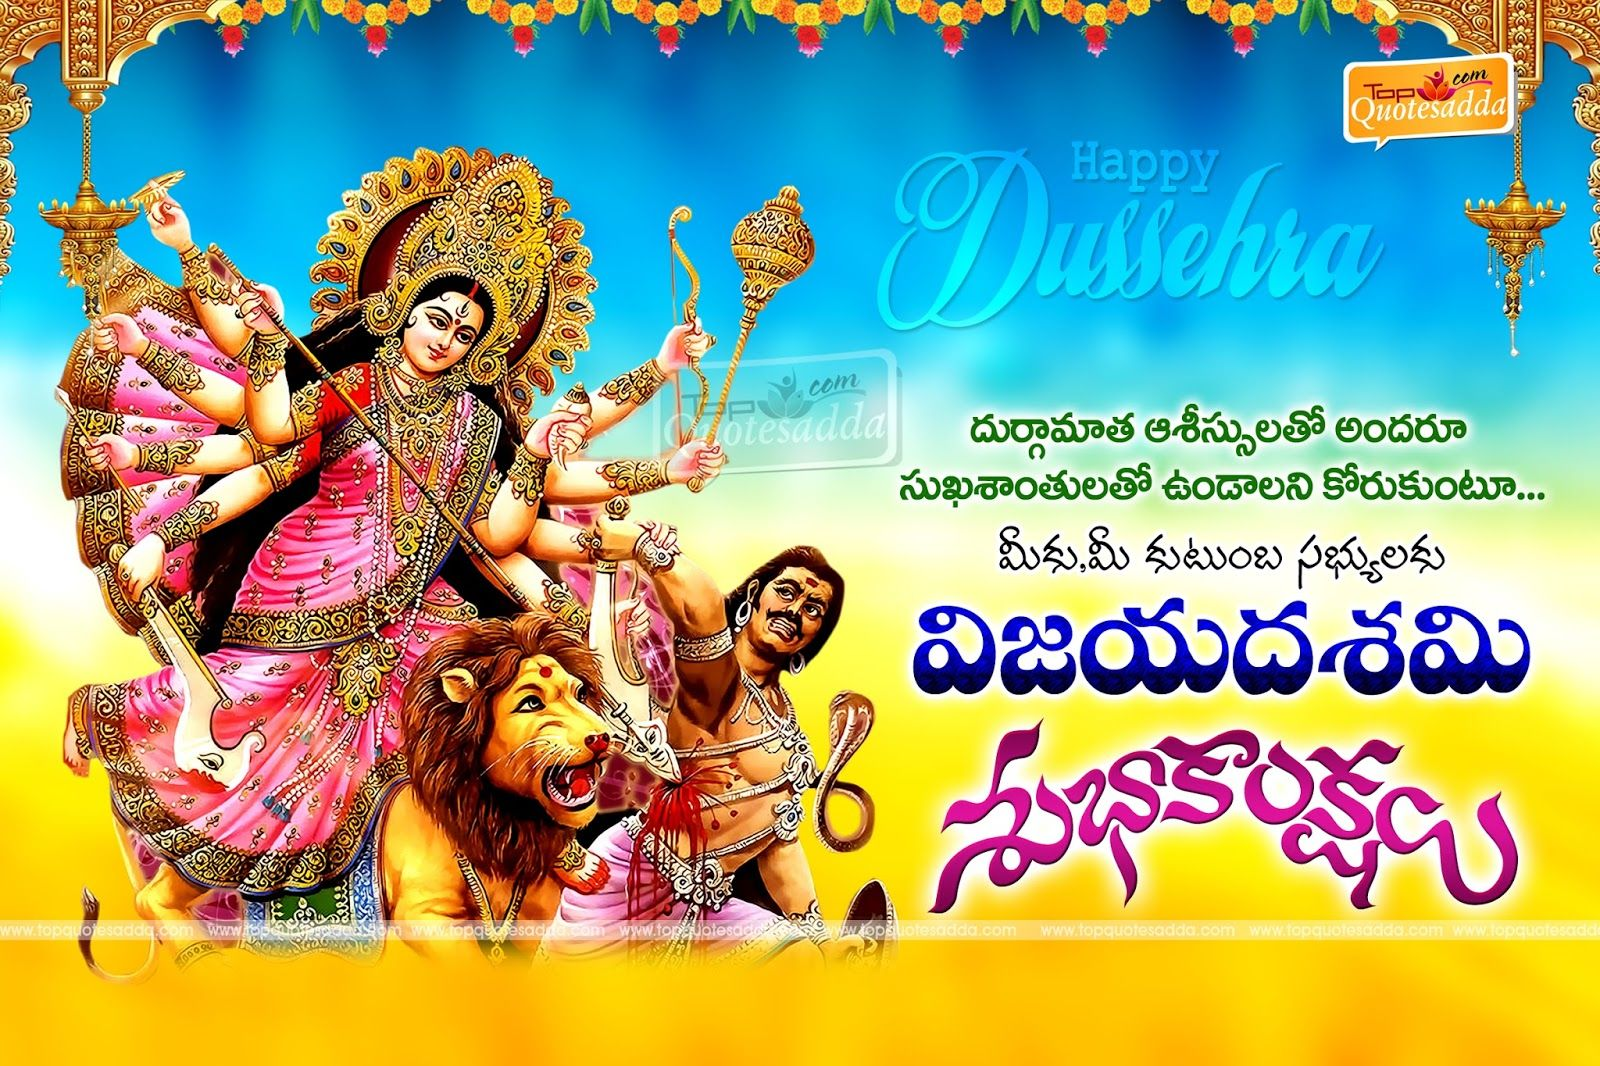 Happy maharnavami telugu quotes wishes best greetings sms wallpapers discover ideas about greetings images happy vijayadasami maharnavami dasara telugu m4hsunfo